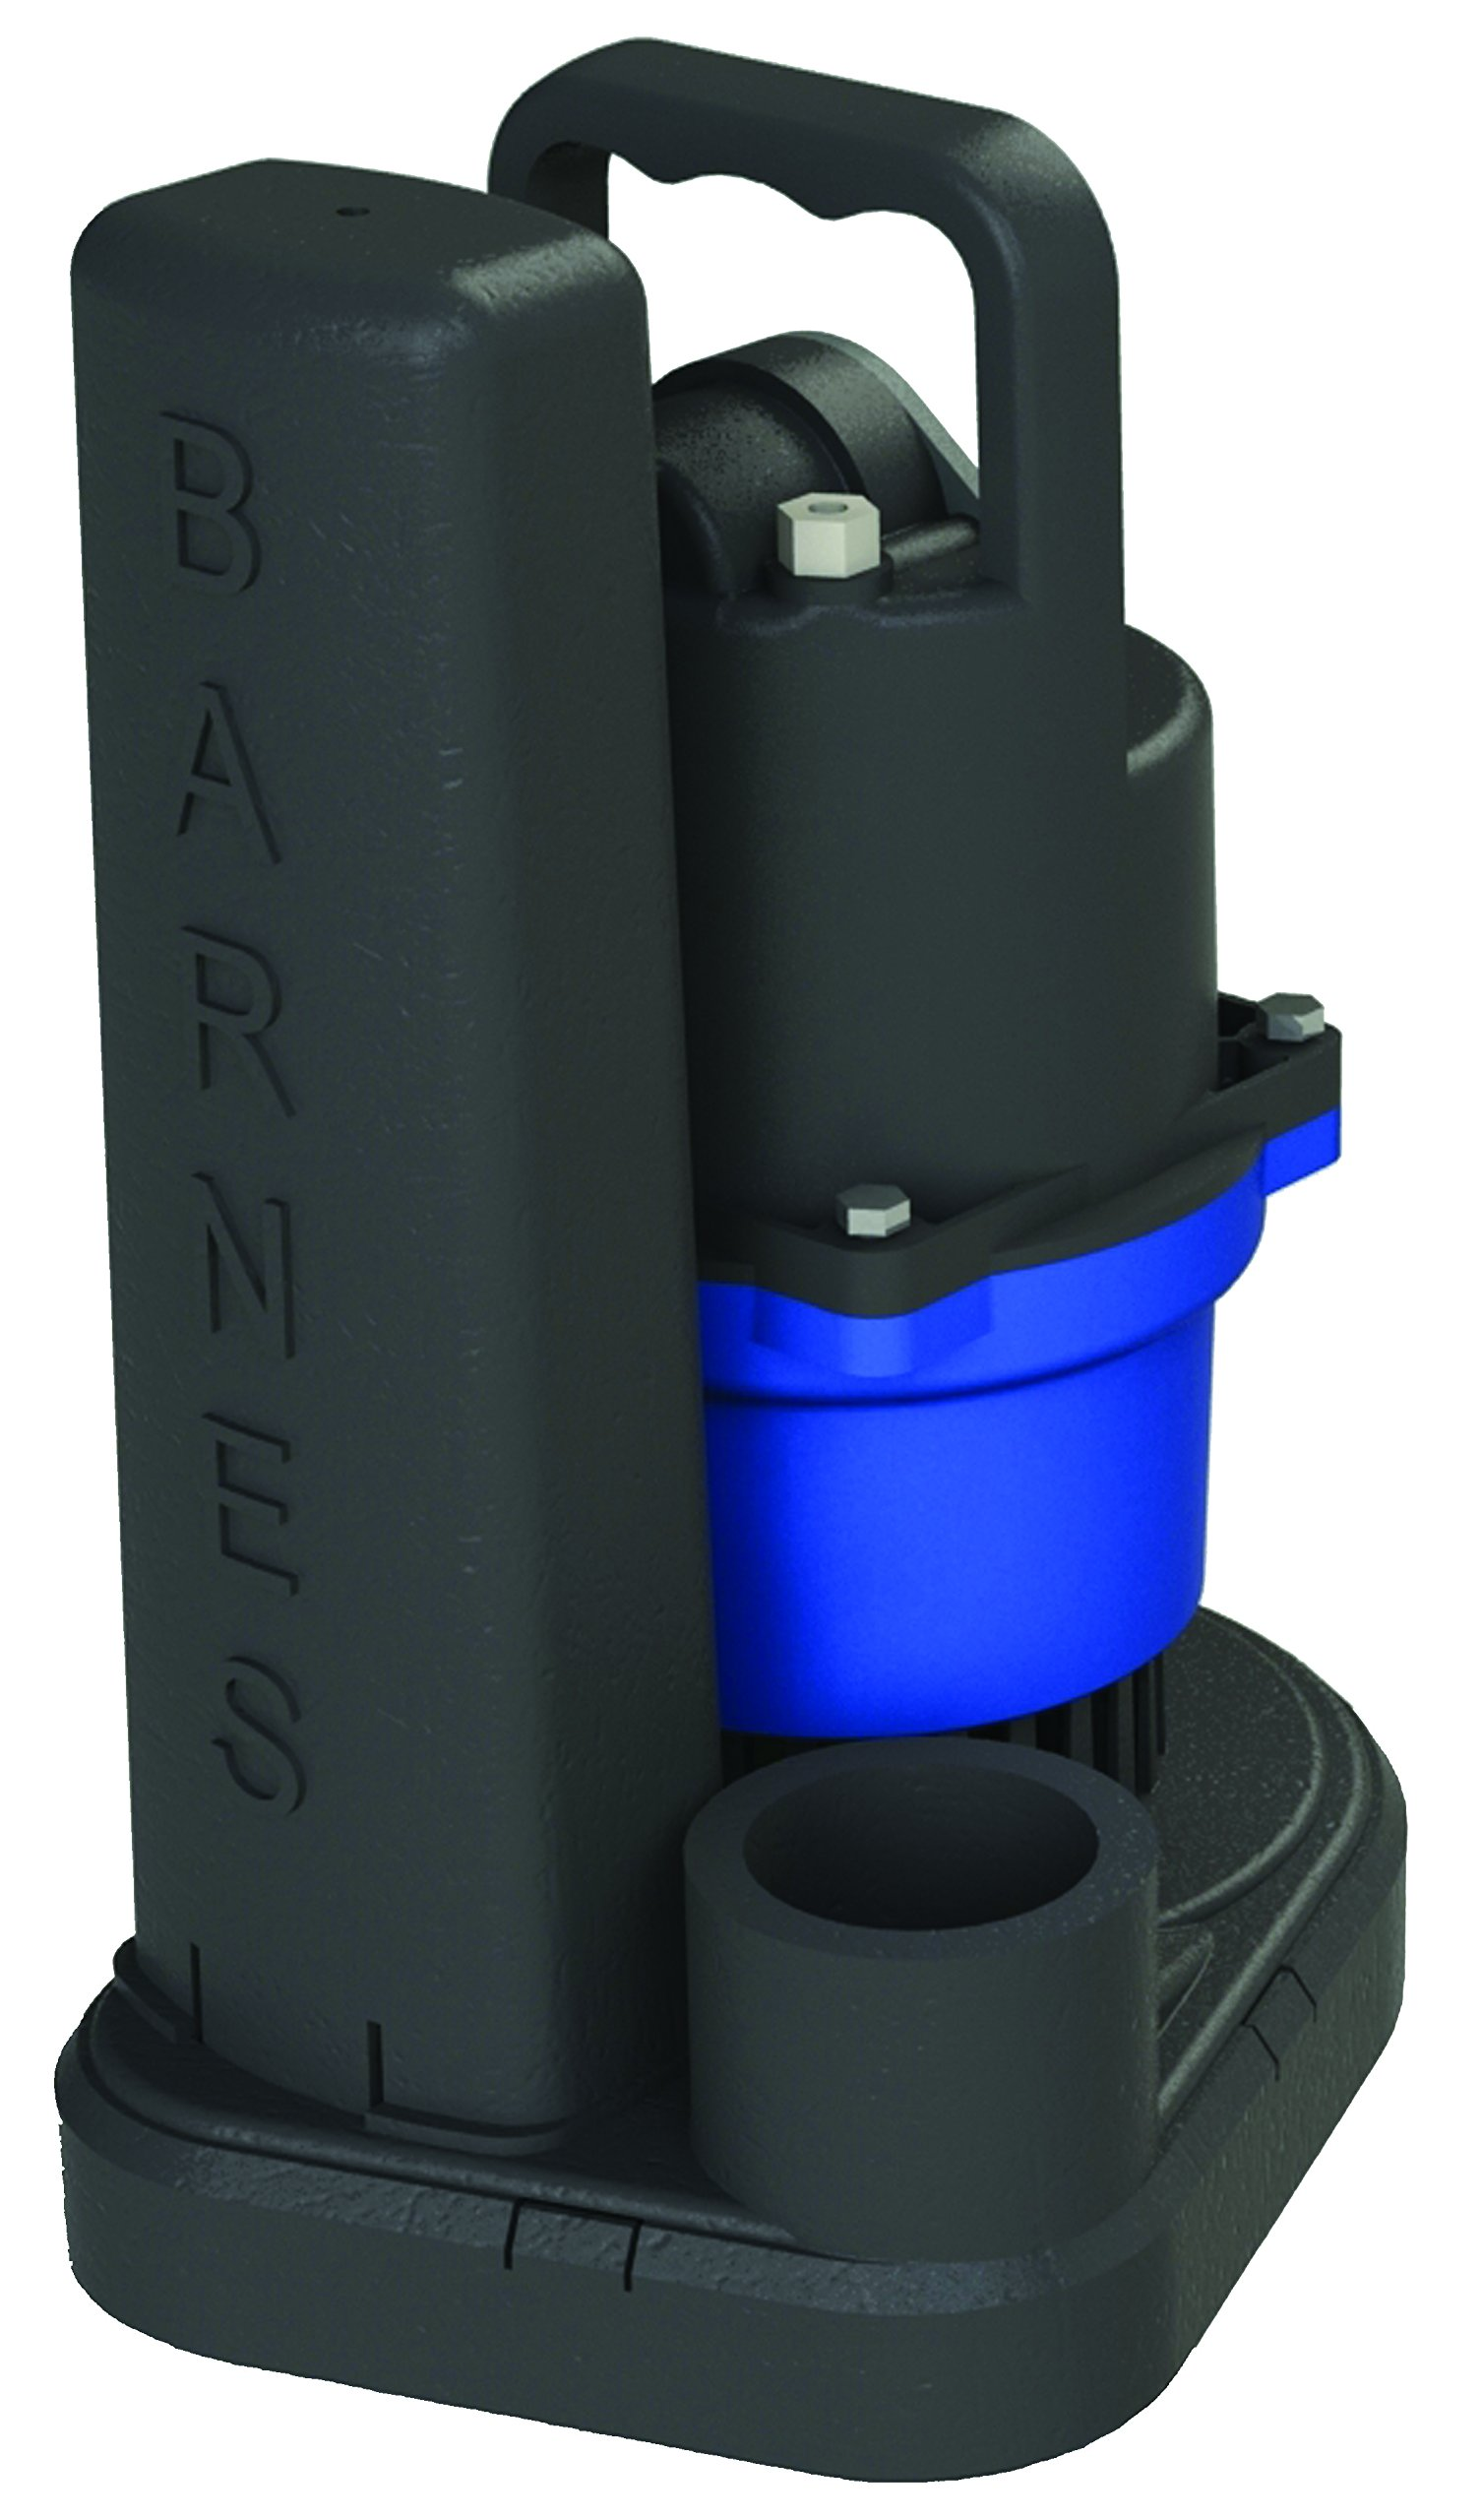 Barnes SU33 Submersible Cast Iron Sump Pump - 1/3-HP, 2,700 GPH, 9' Cord, Magnetic Float Switch, for Residential Use